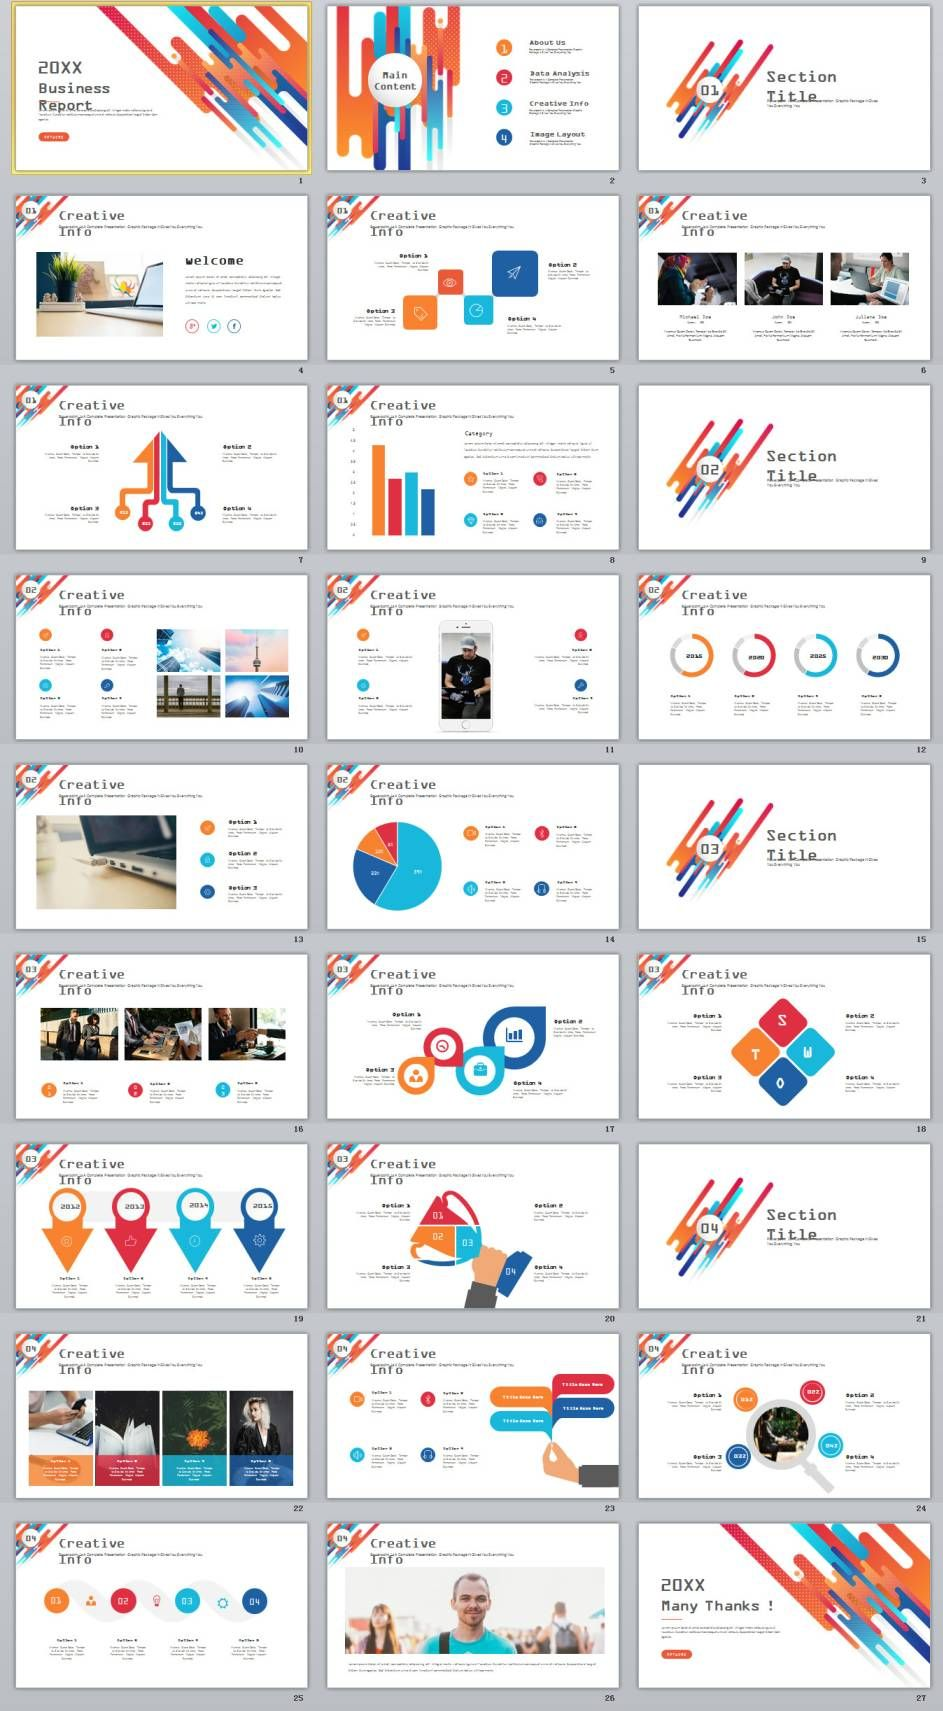 27 creative infographics report powerpoint template design